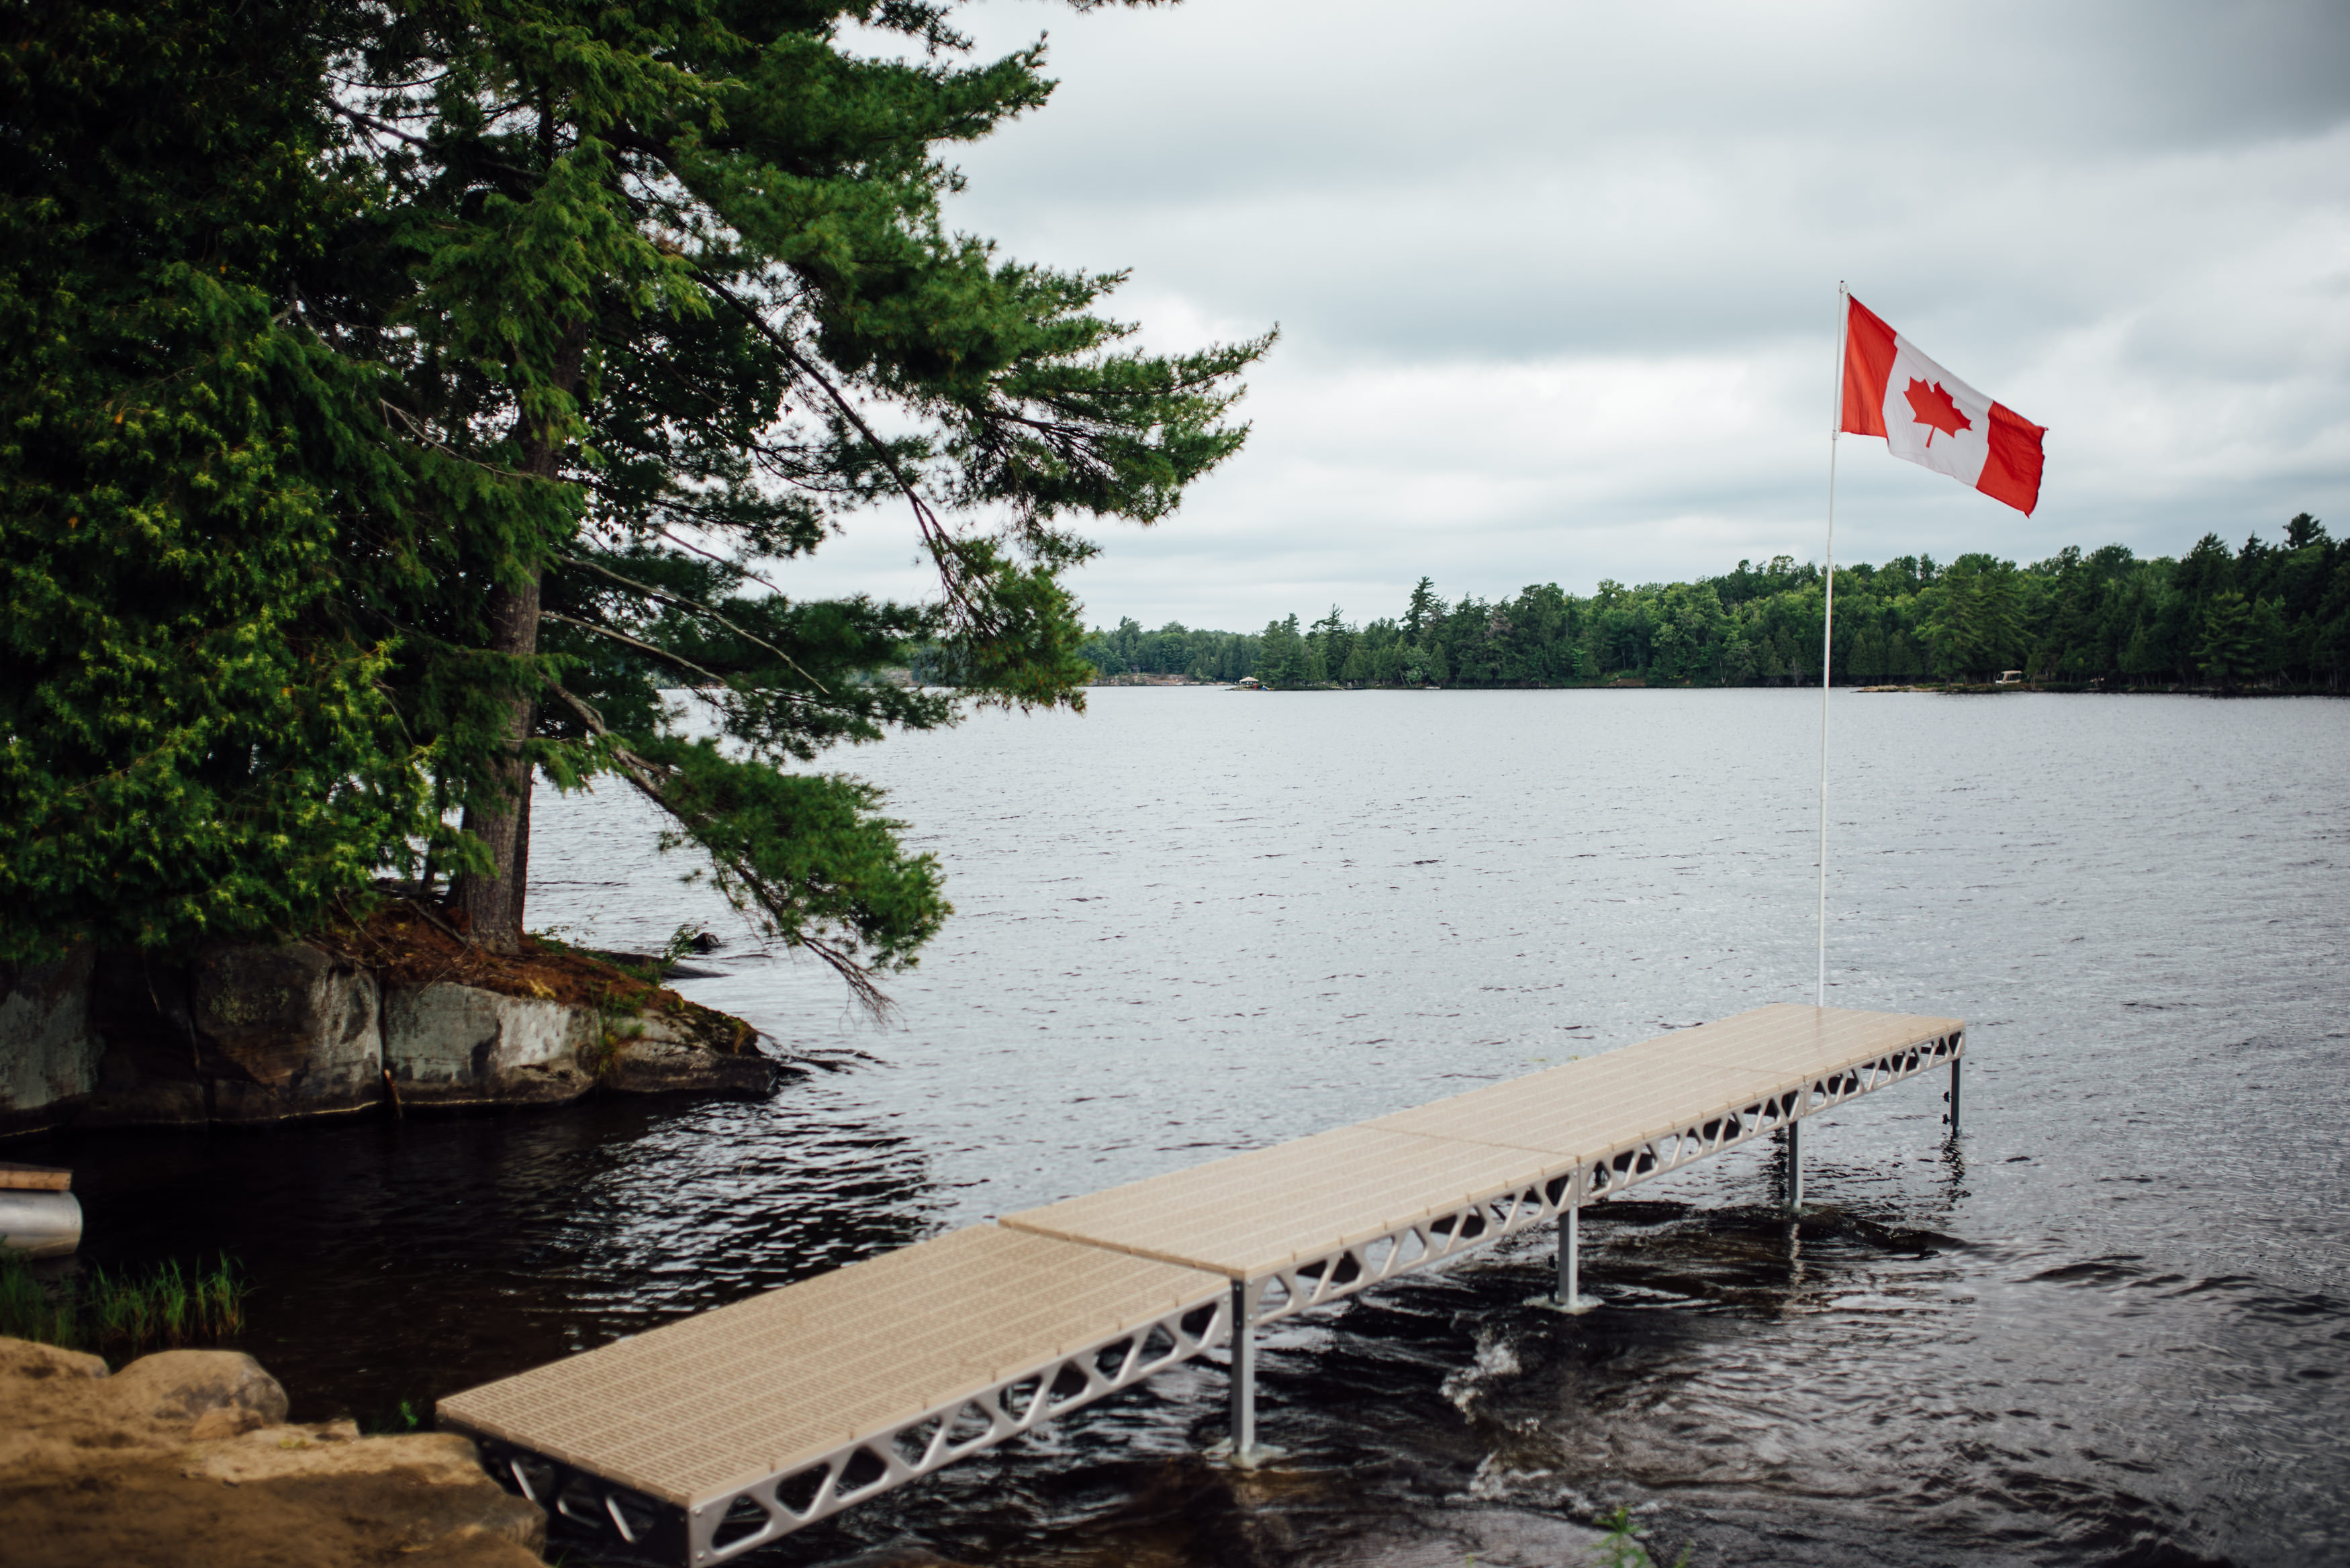 CanadaDocks Standing Dock with Canadian Flag